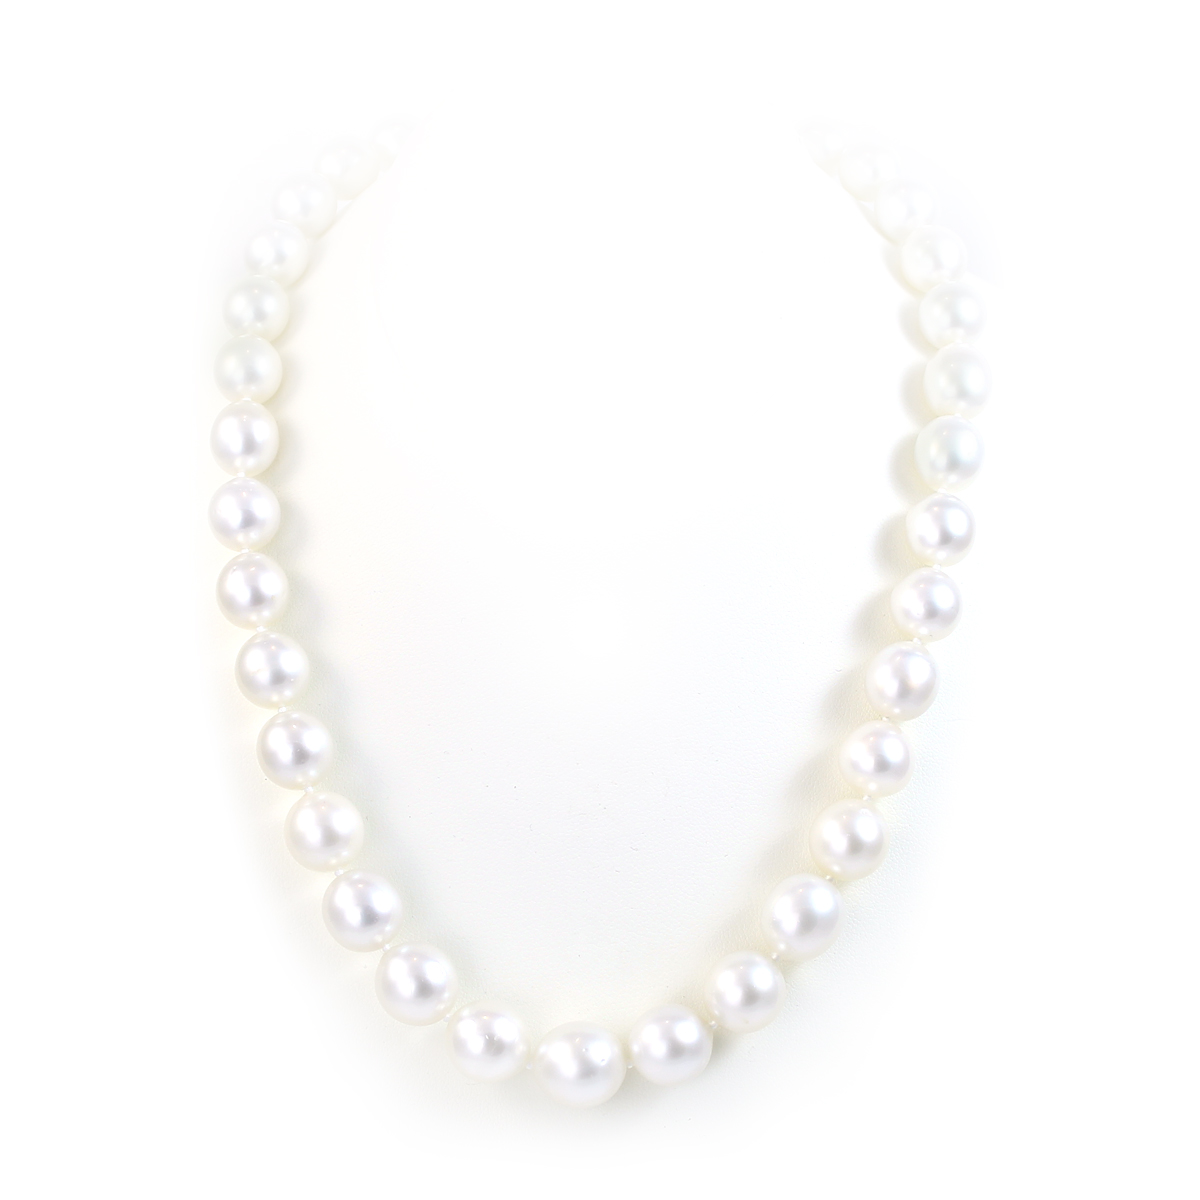 14 Karat White Gold 10-11.5mm White South Sea Pearl Necklace